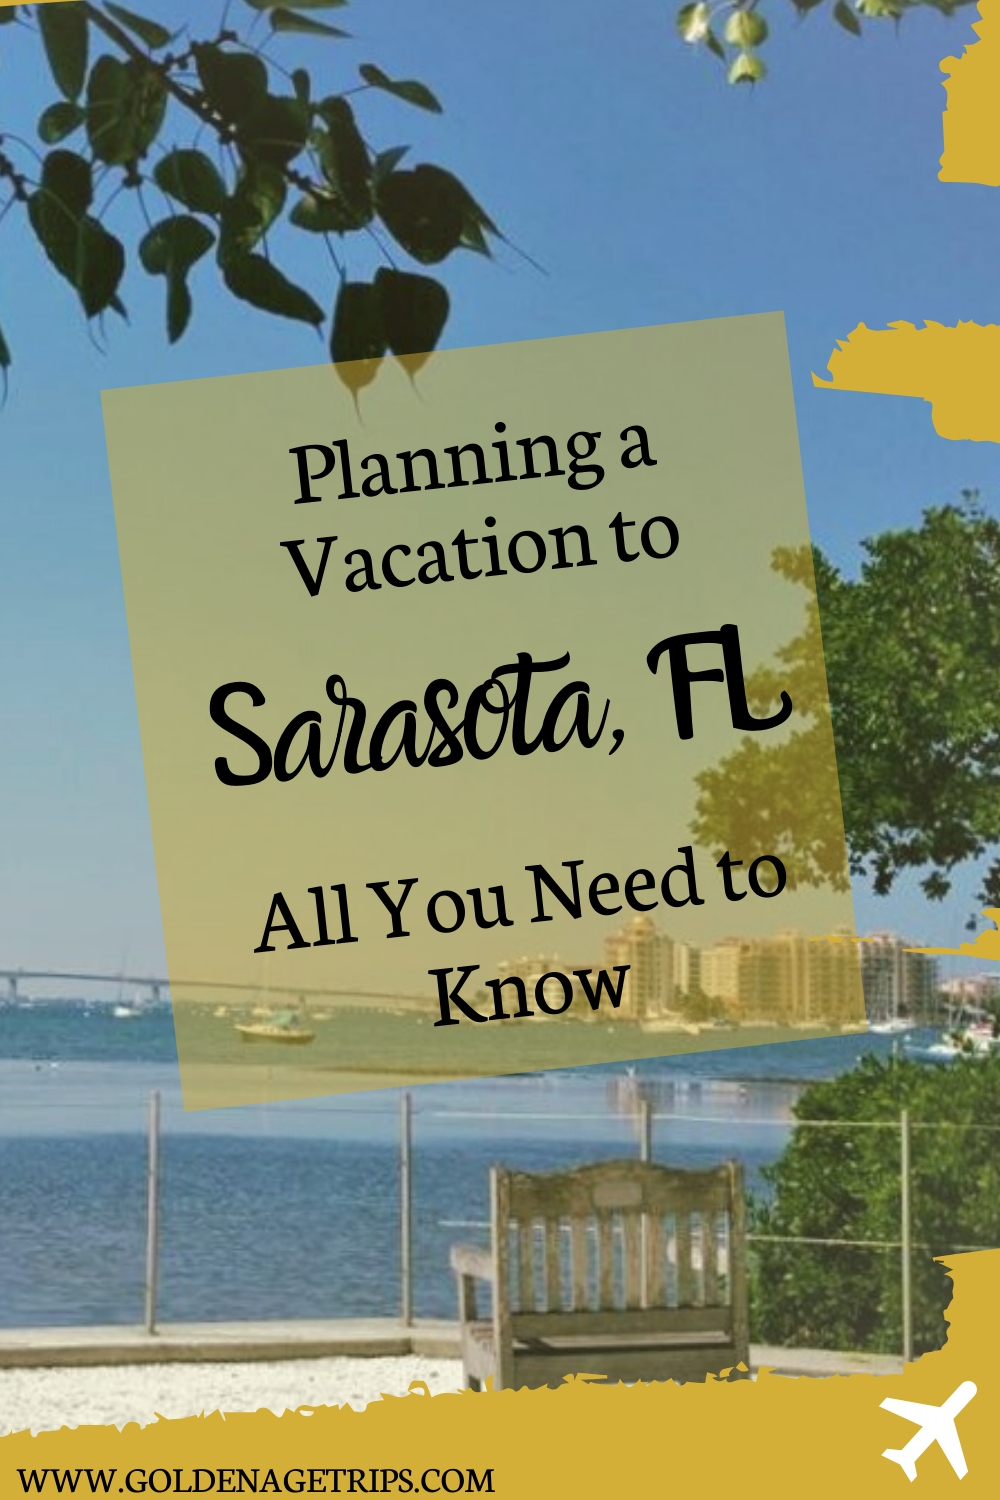 If you're planning a vacation to Sarasota, FL here's a guide that'll help you make the most of your vacation. Where to stay, what to do, where to eat & more. #sarasota #florida